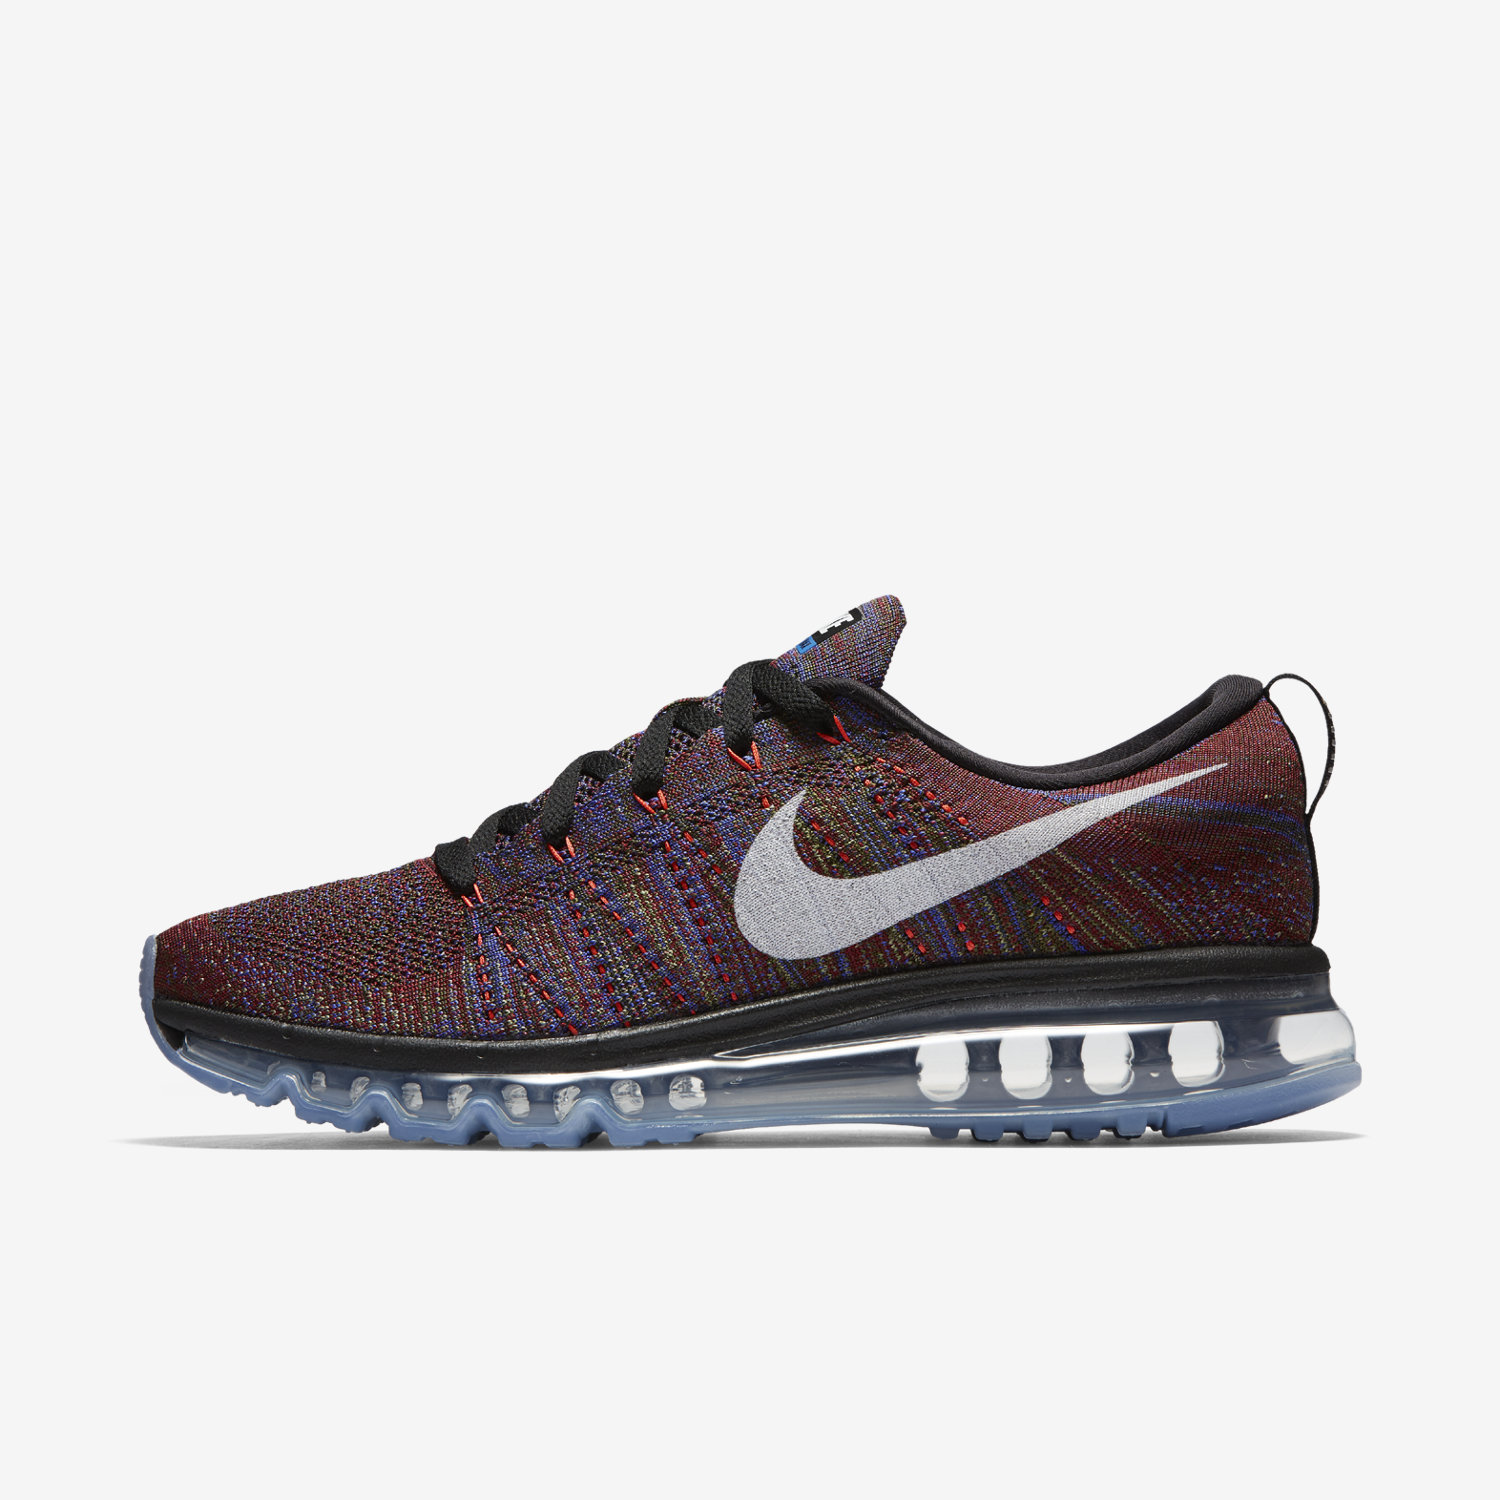 nike flyknit air max running shoes ,clearance nike shoes